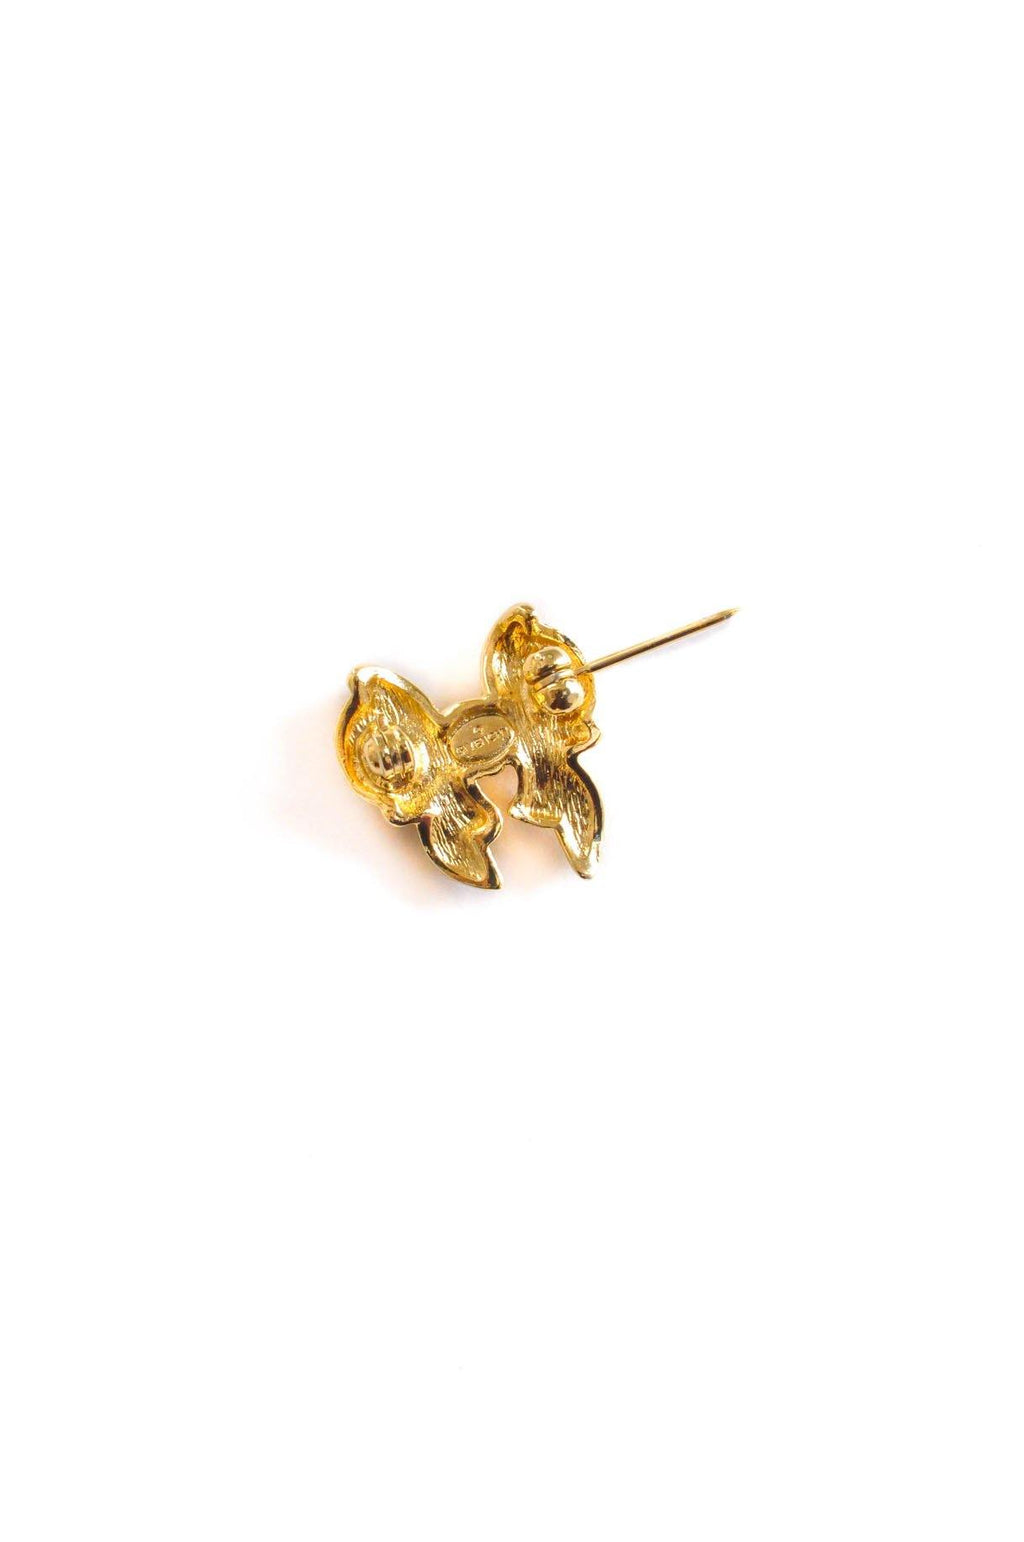 Givenchy Rhinestone Mini Bow Brooch